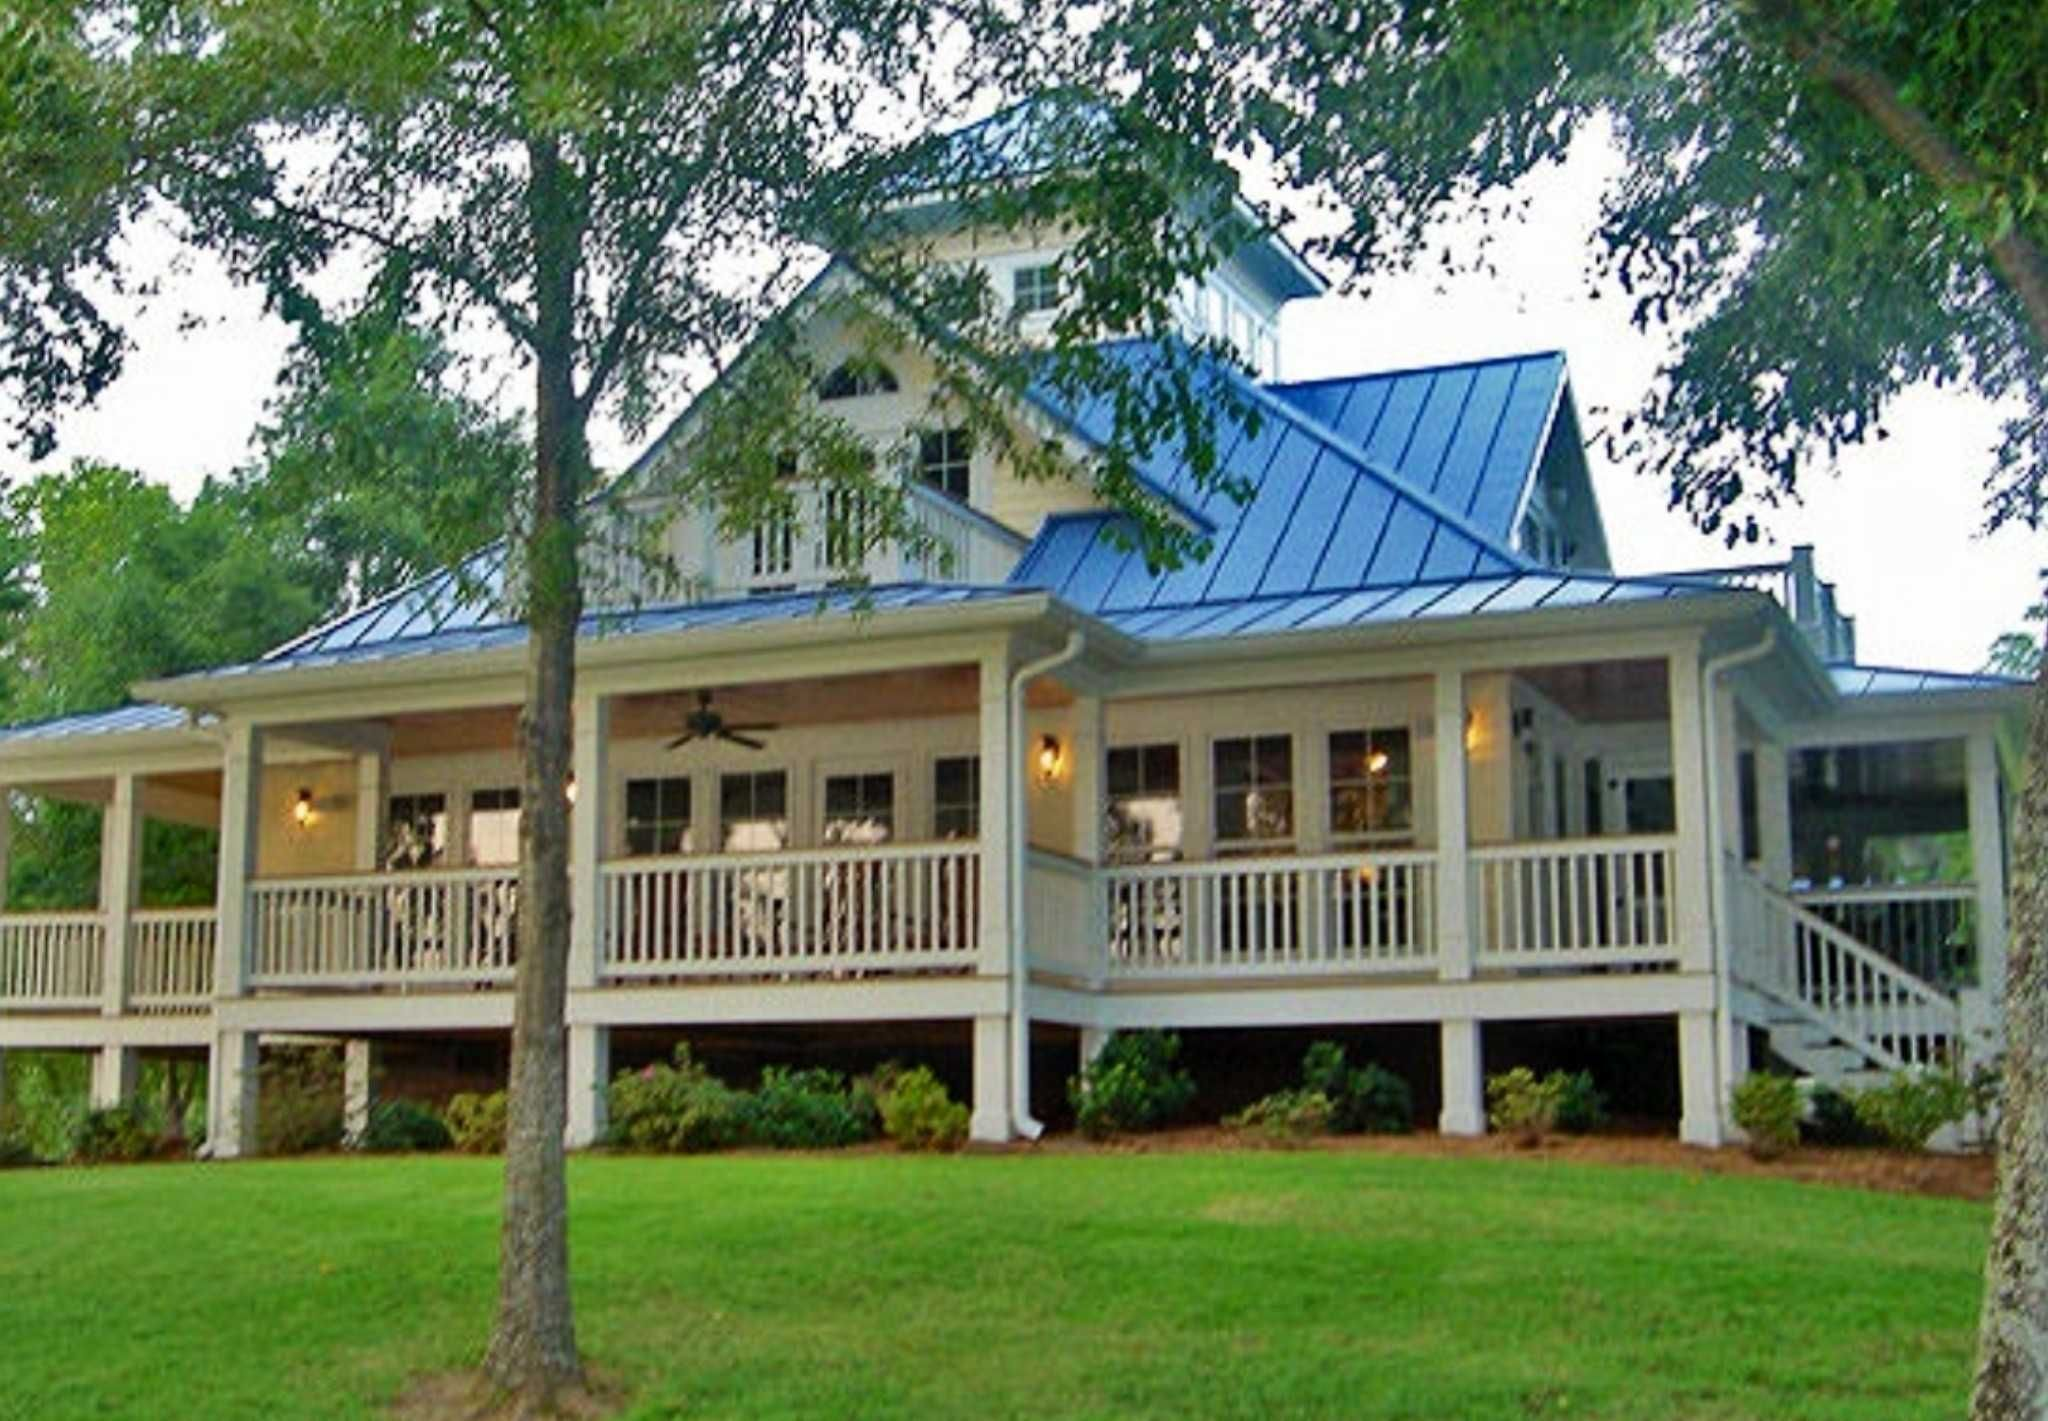 Rustic Ranch House Wrap Around Porch Inspirational Southern Living House Plans Farmhouse Lovely Ranch House Cottage House Plans Beach House Plans Cottage Plan